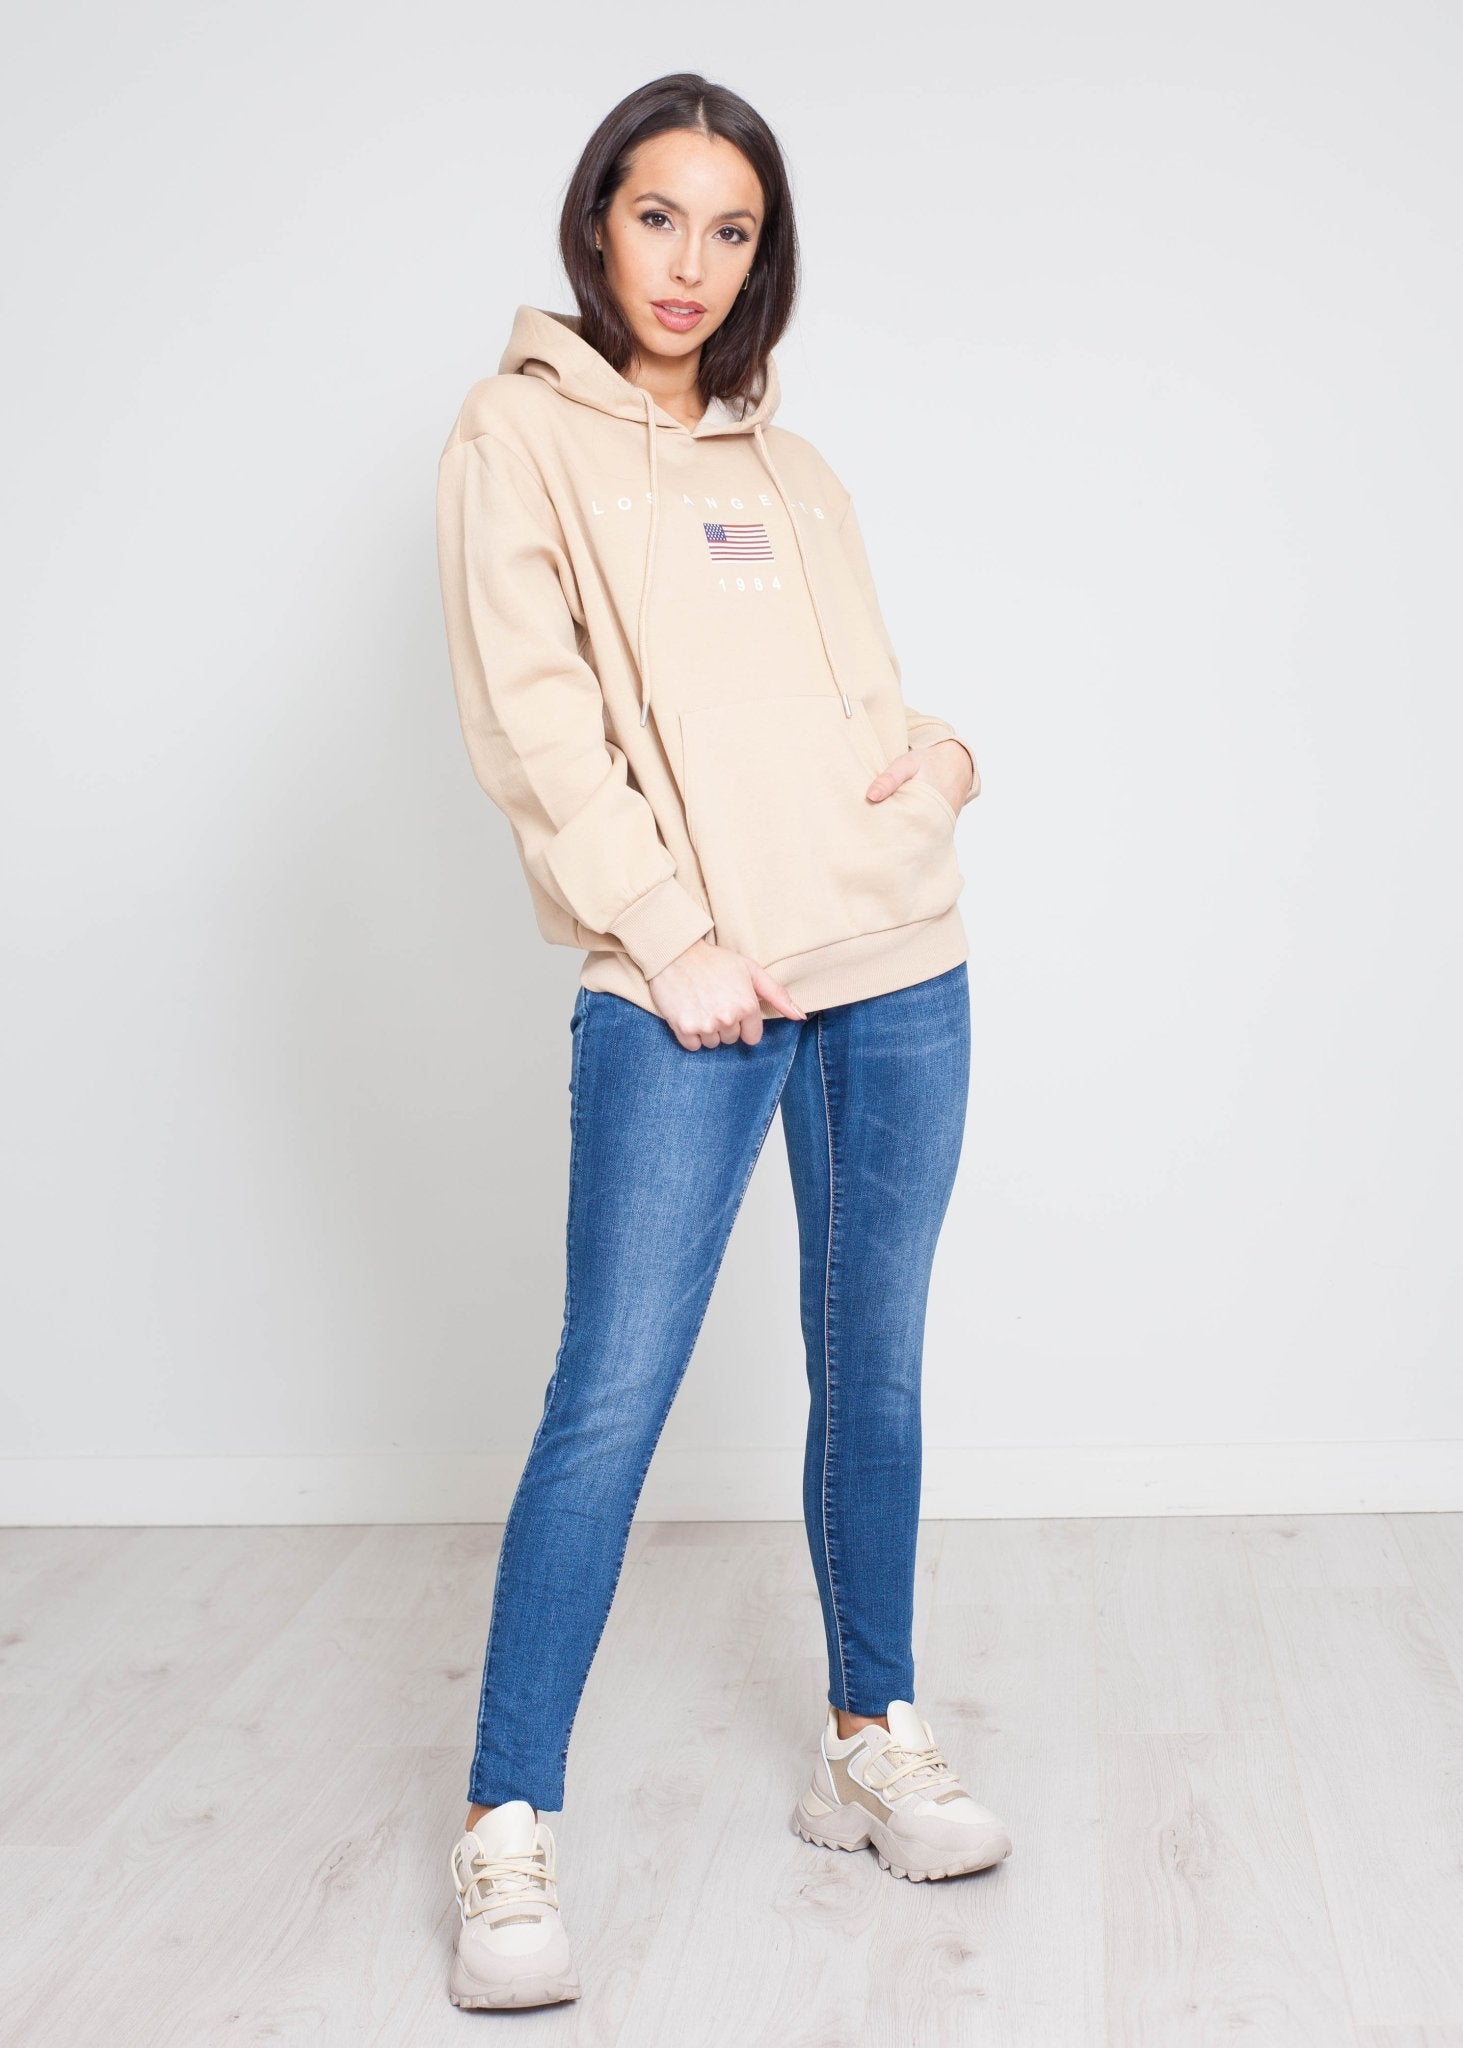 Jade Printed Hoodie In Beige - The Walk in Wardrobe